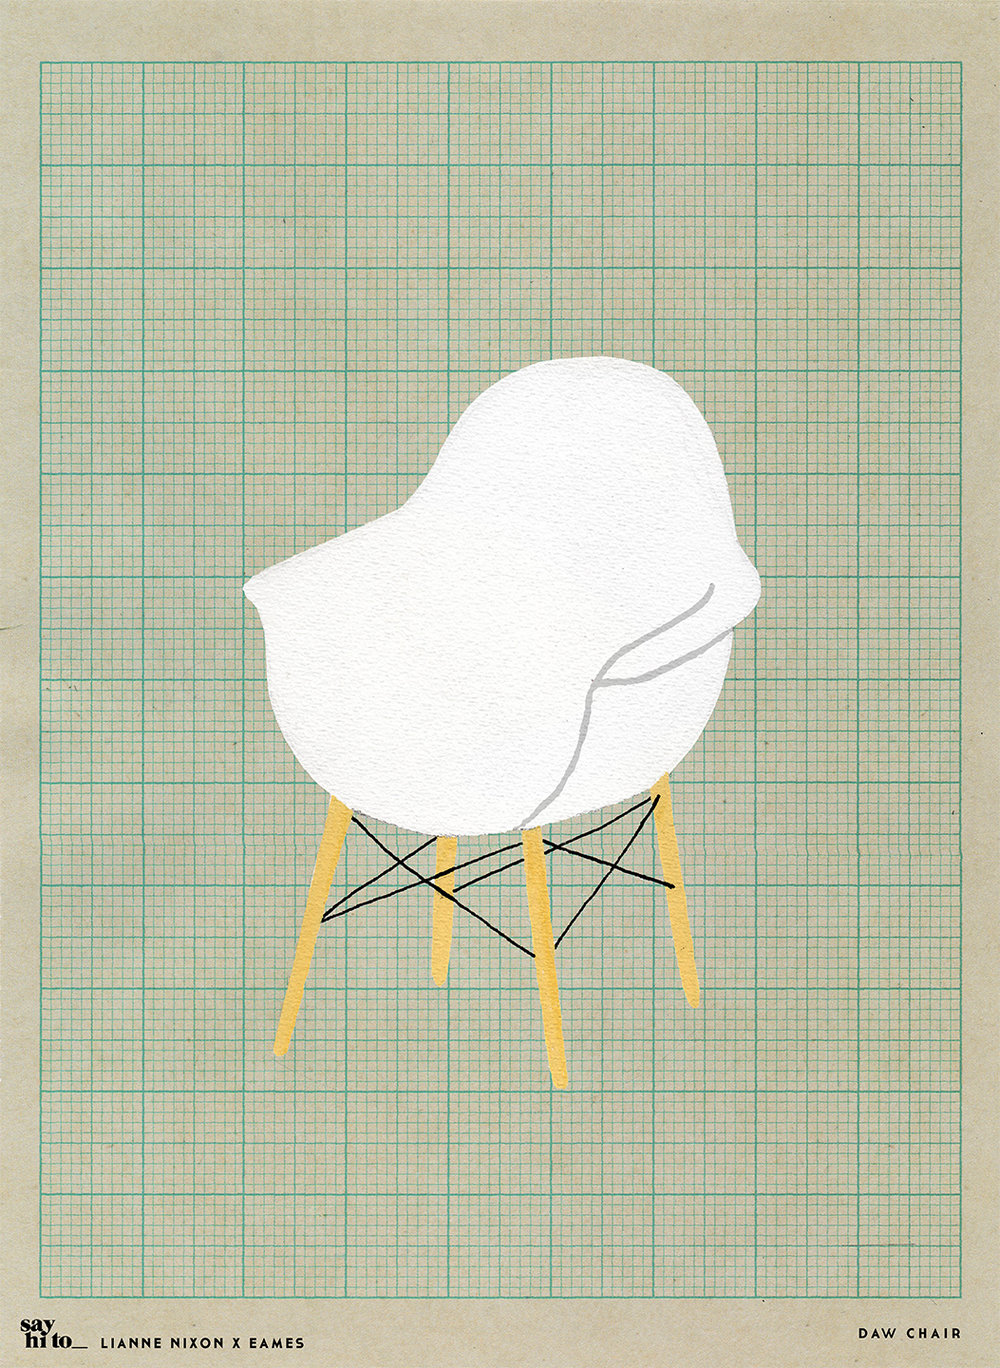 say hi to_ Lianne Nixon x Eames